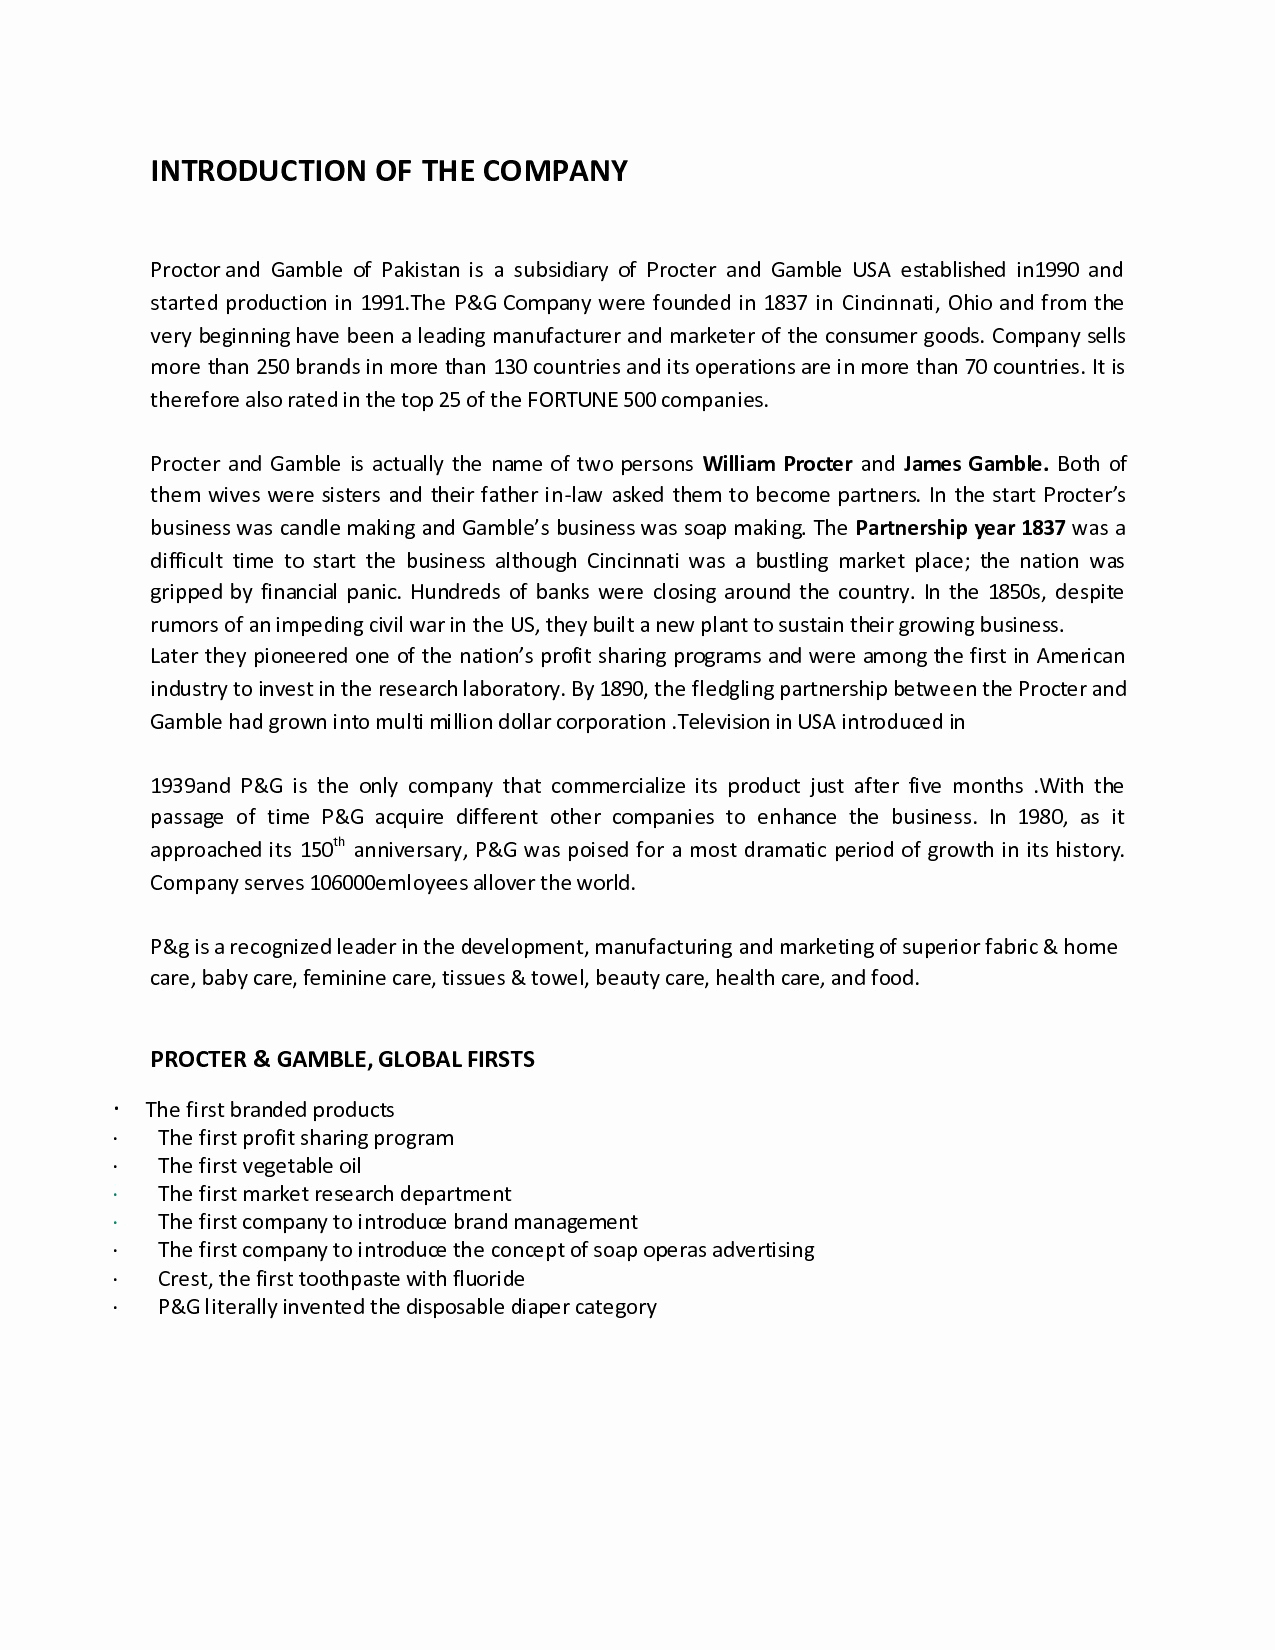 Email Covering Letter Template - Sample Email Cover Letter with Resume Unique Cover Letter Template